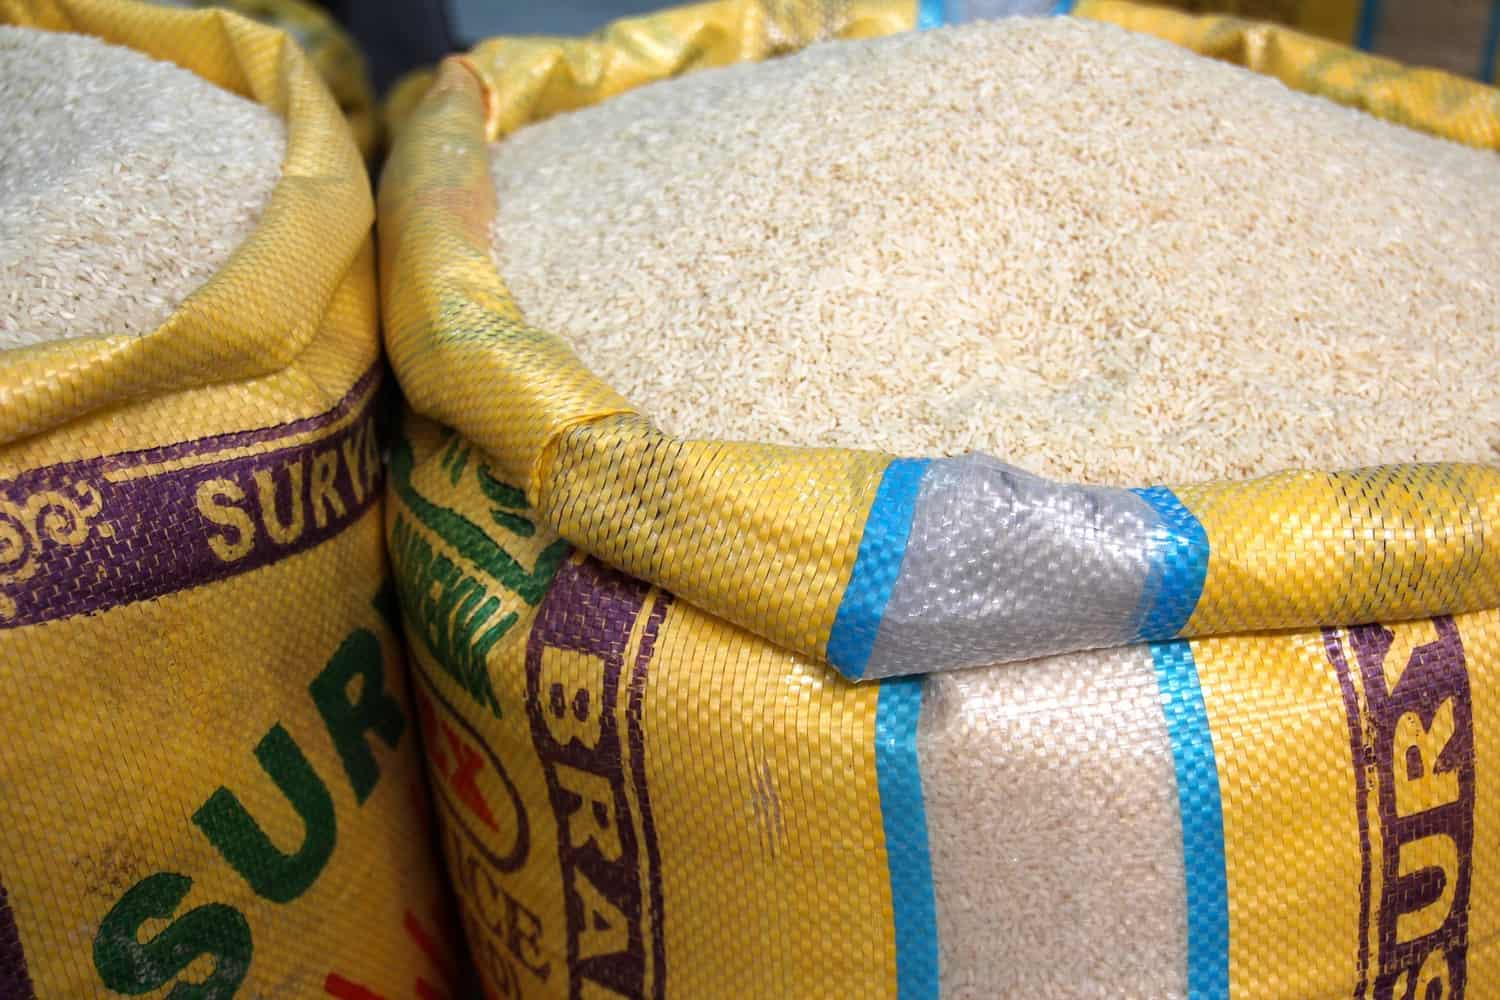 bag of rice arsenic is contained in rice